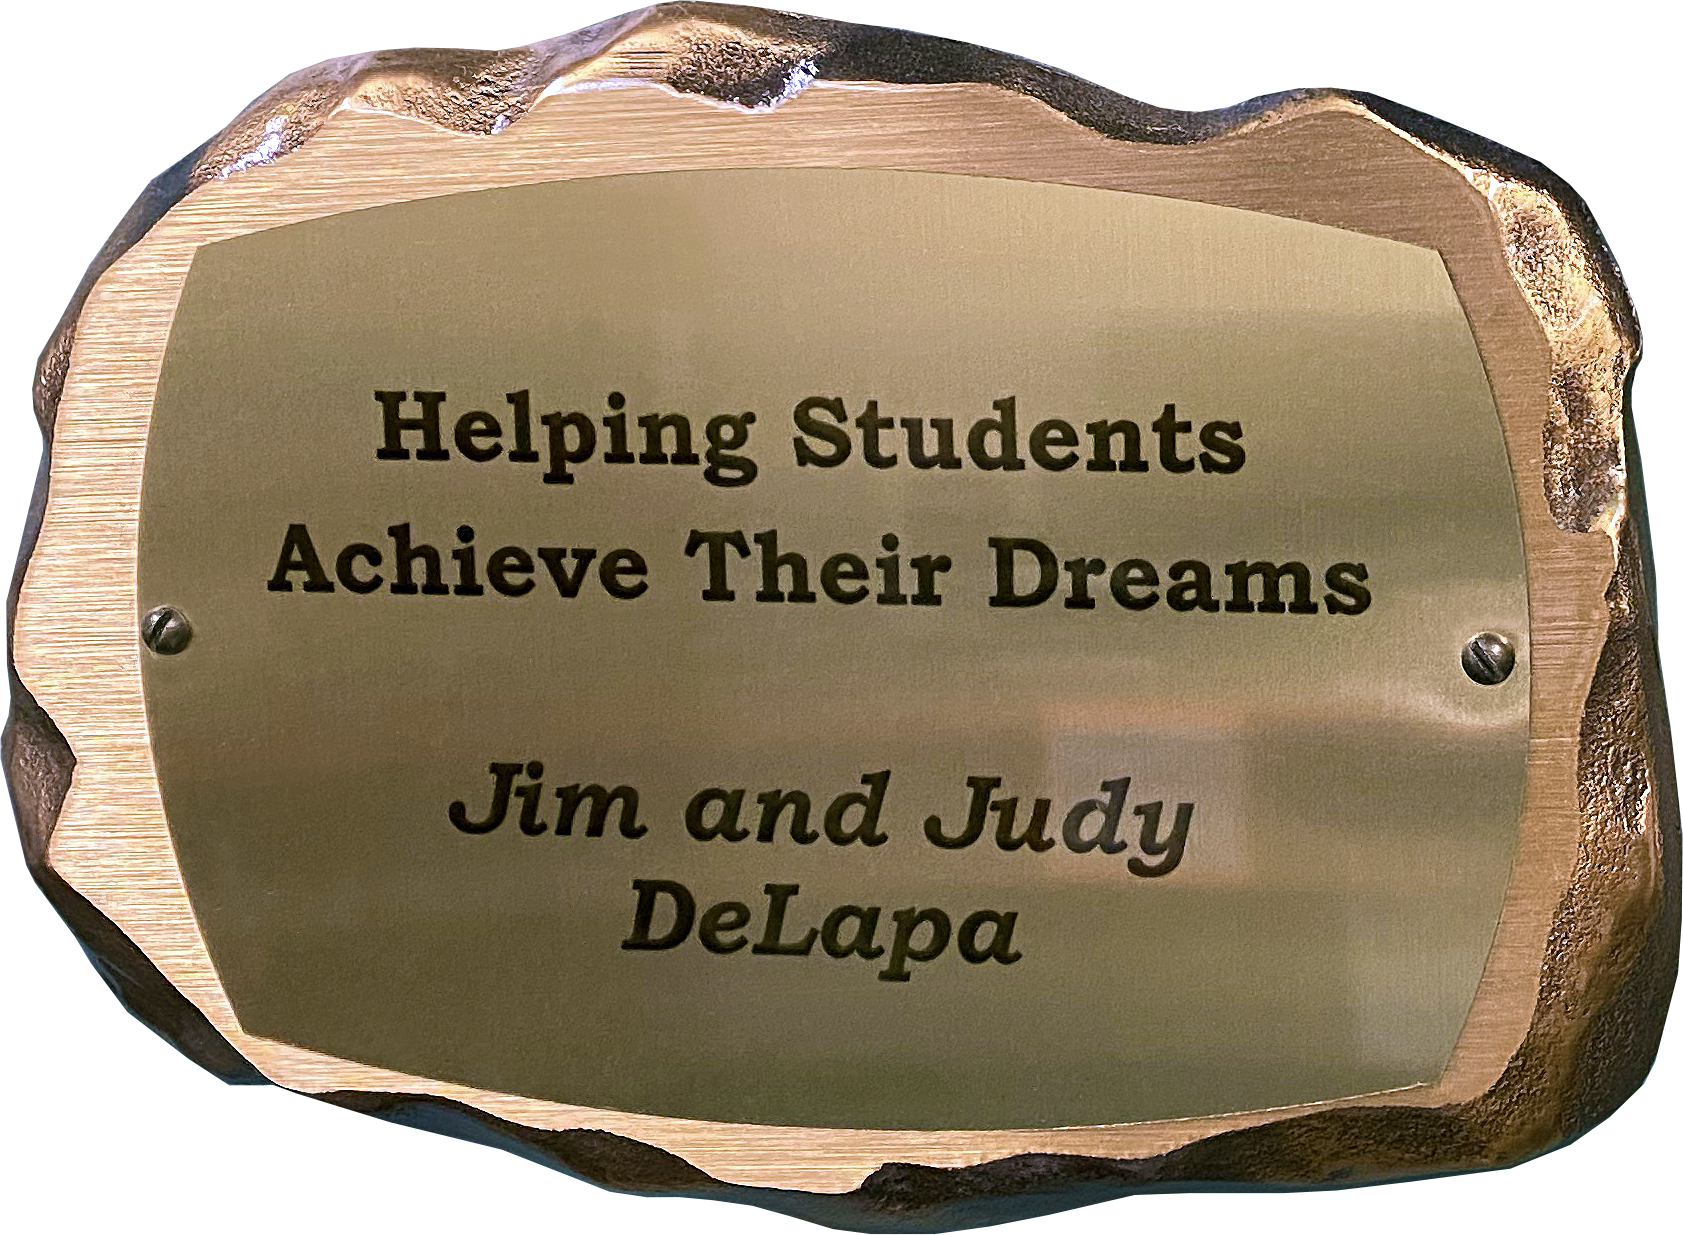 Inscribed bronze plaque in the shape of a rock with text on it reading: Helping Students Achieve Their Dreams. Jim and Judy DeLapa